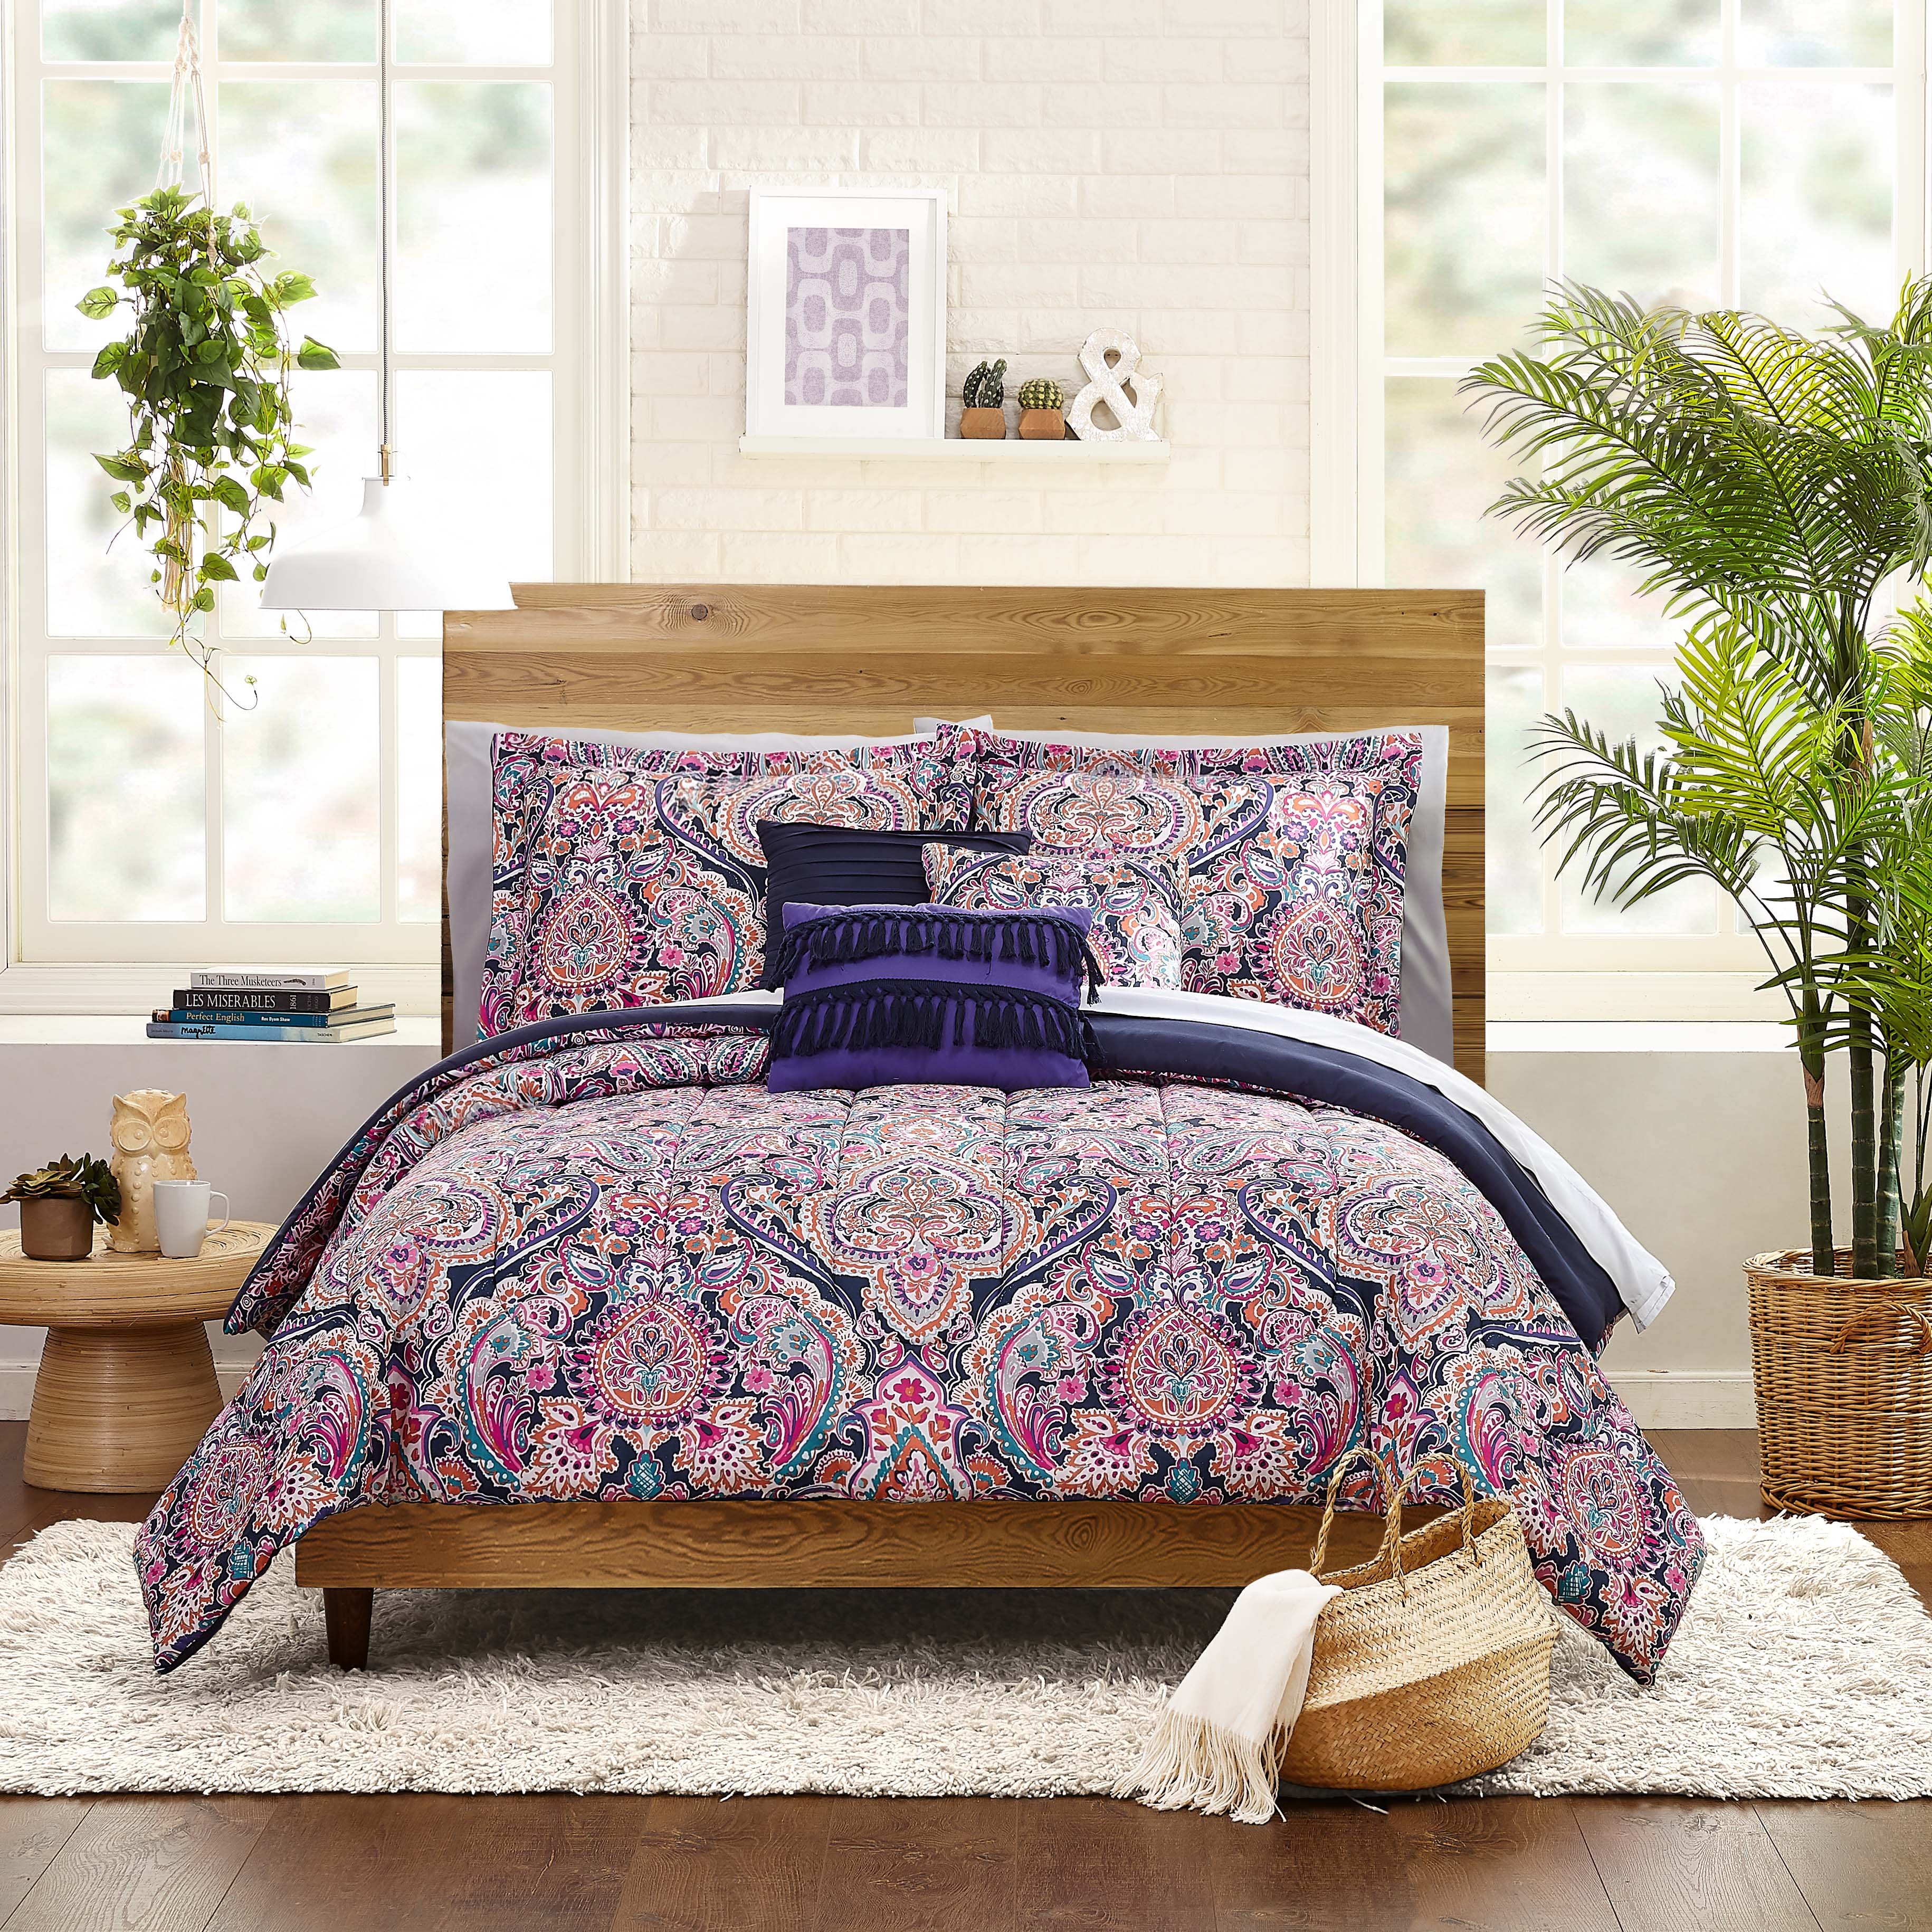 Mainstays Multi Medallion Bed In A Bag Queen Bedding Set Walmart Com Walmart Com